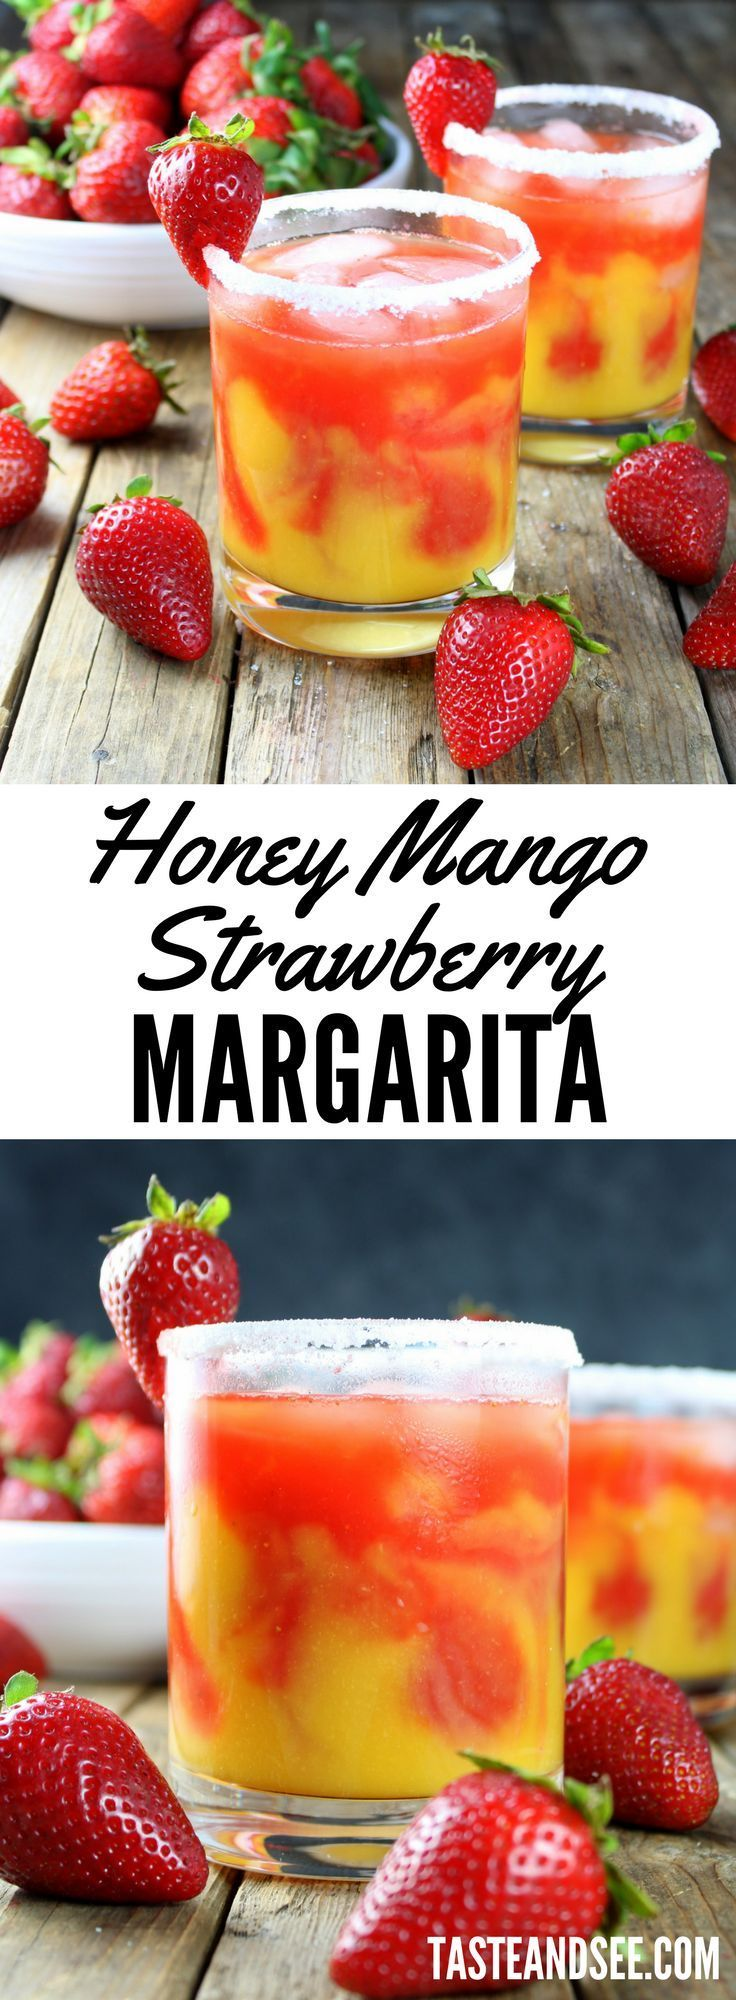 The Honey Mango Strawberry Margarita... fresh, fruity, boozy and delicious! The perfect cocktail for Taco Tuesday, Cinco de Mayo or anytime you want something tasty and refreshing. http://tasteandsee.com